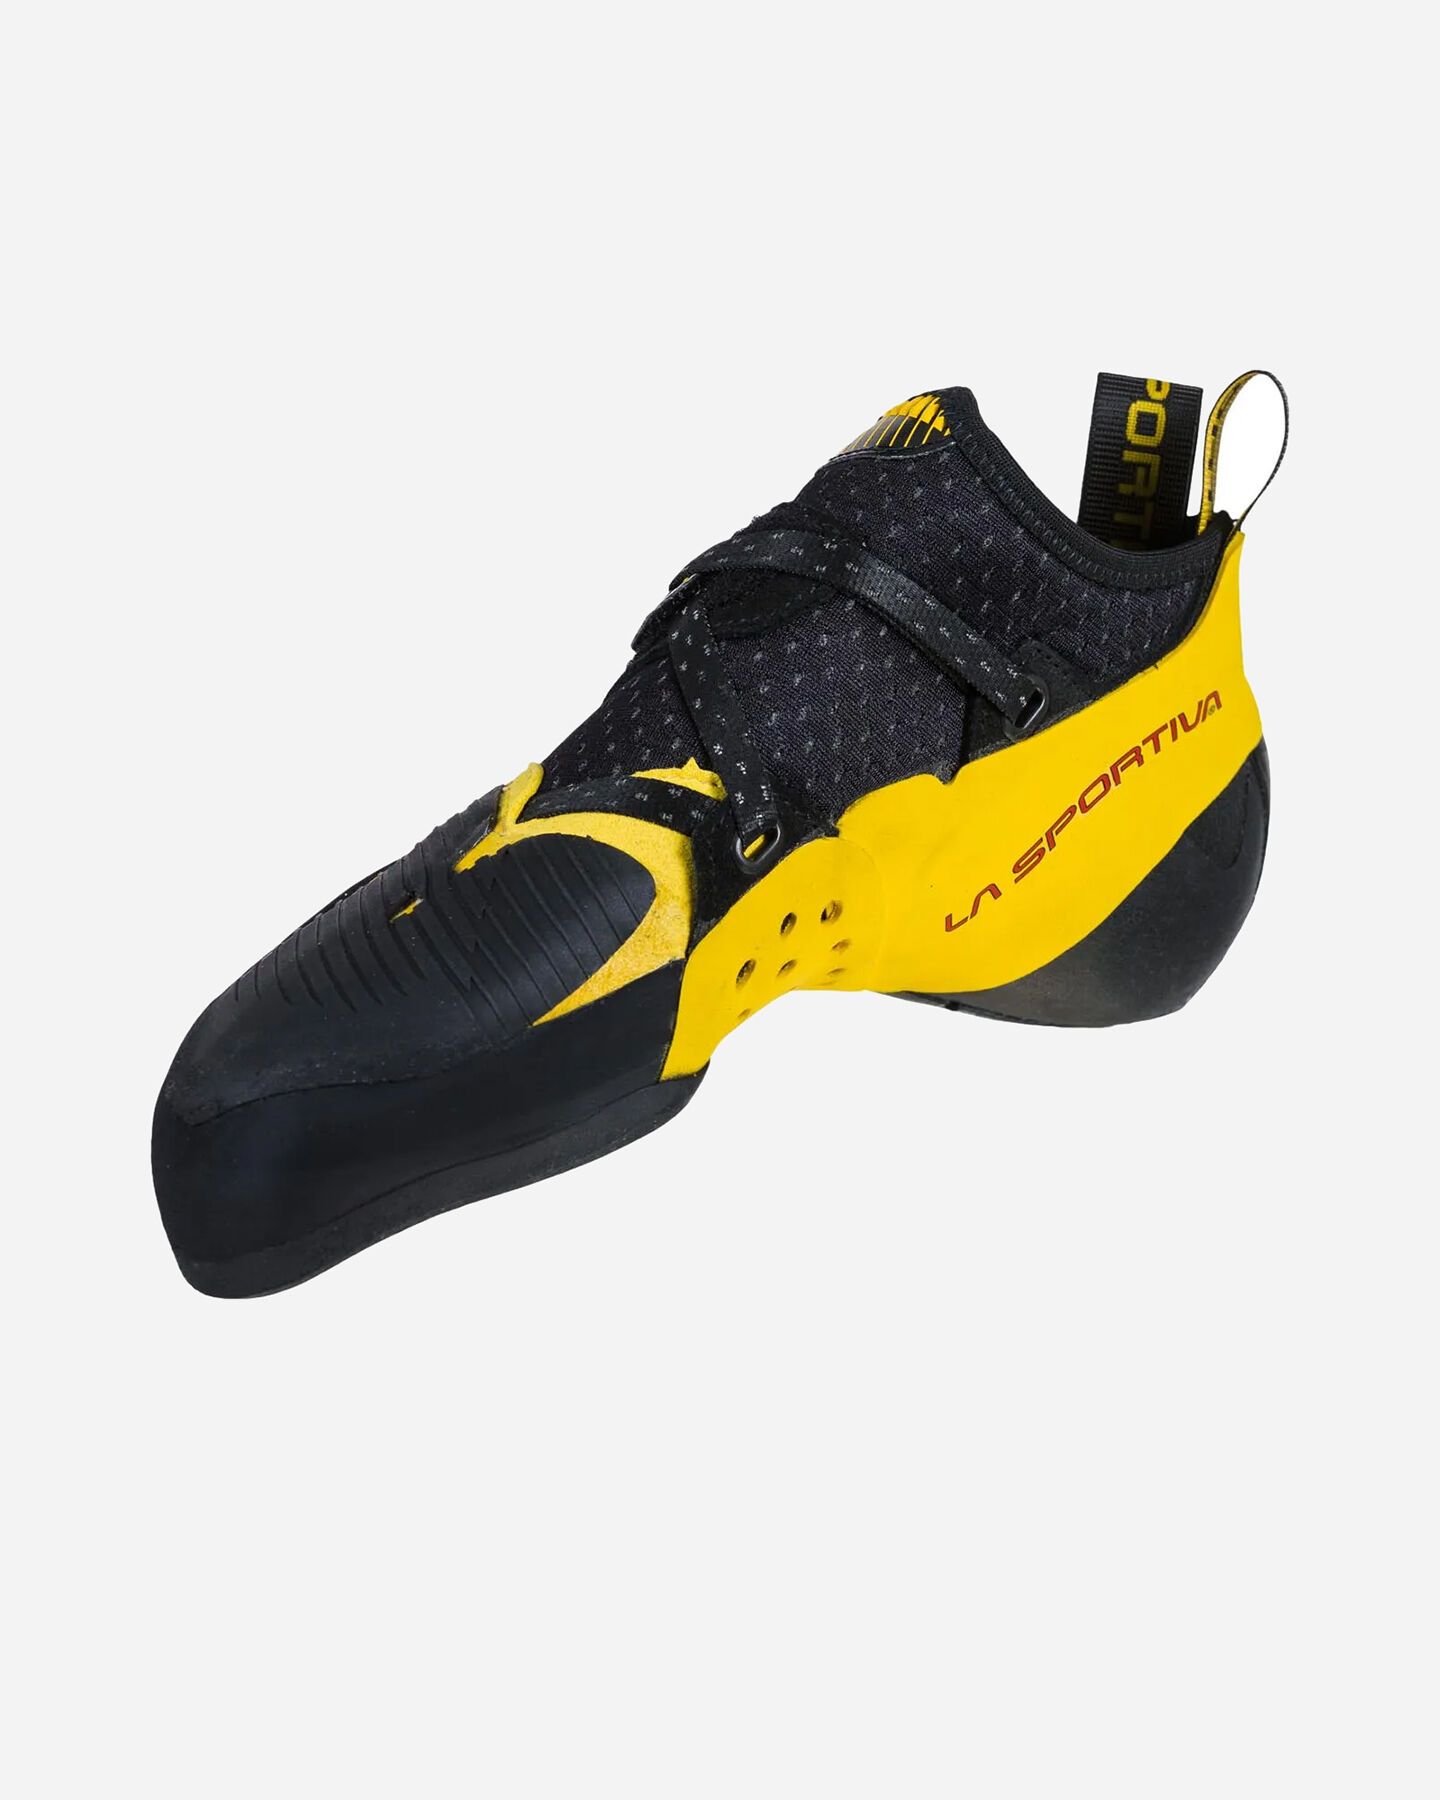 Scarpette arrampicata LA SPORTIVA SOLUTION COMP S5198171 scatto 1